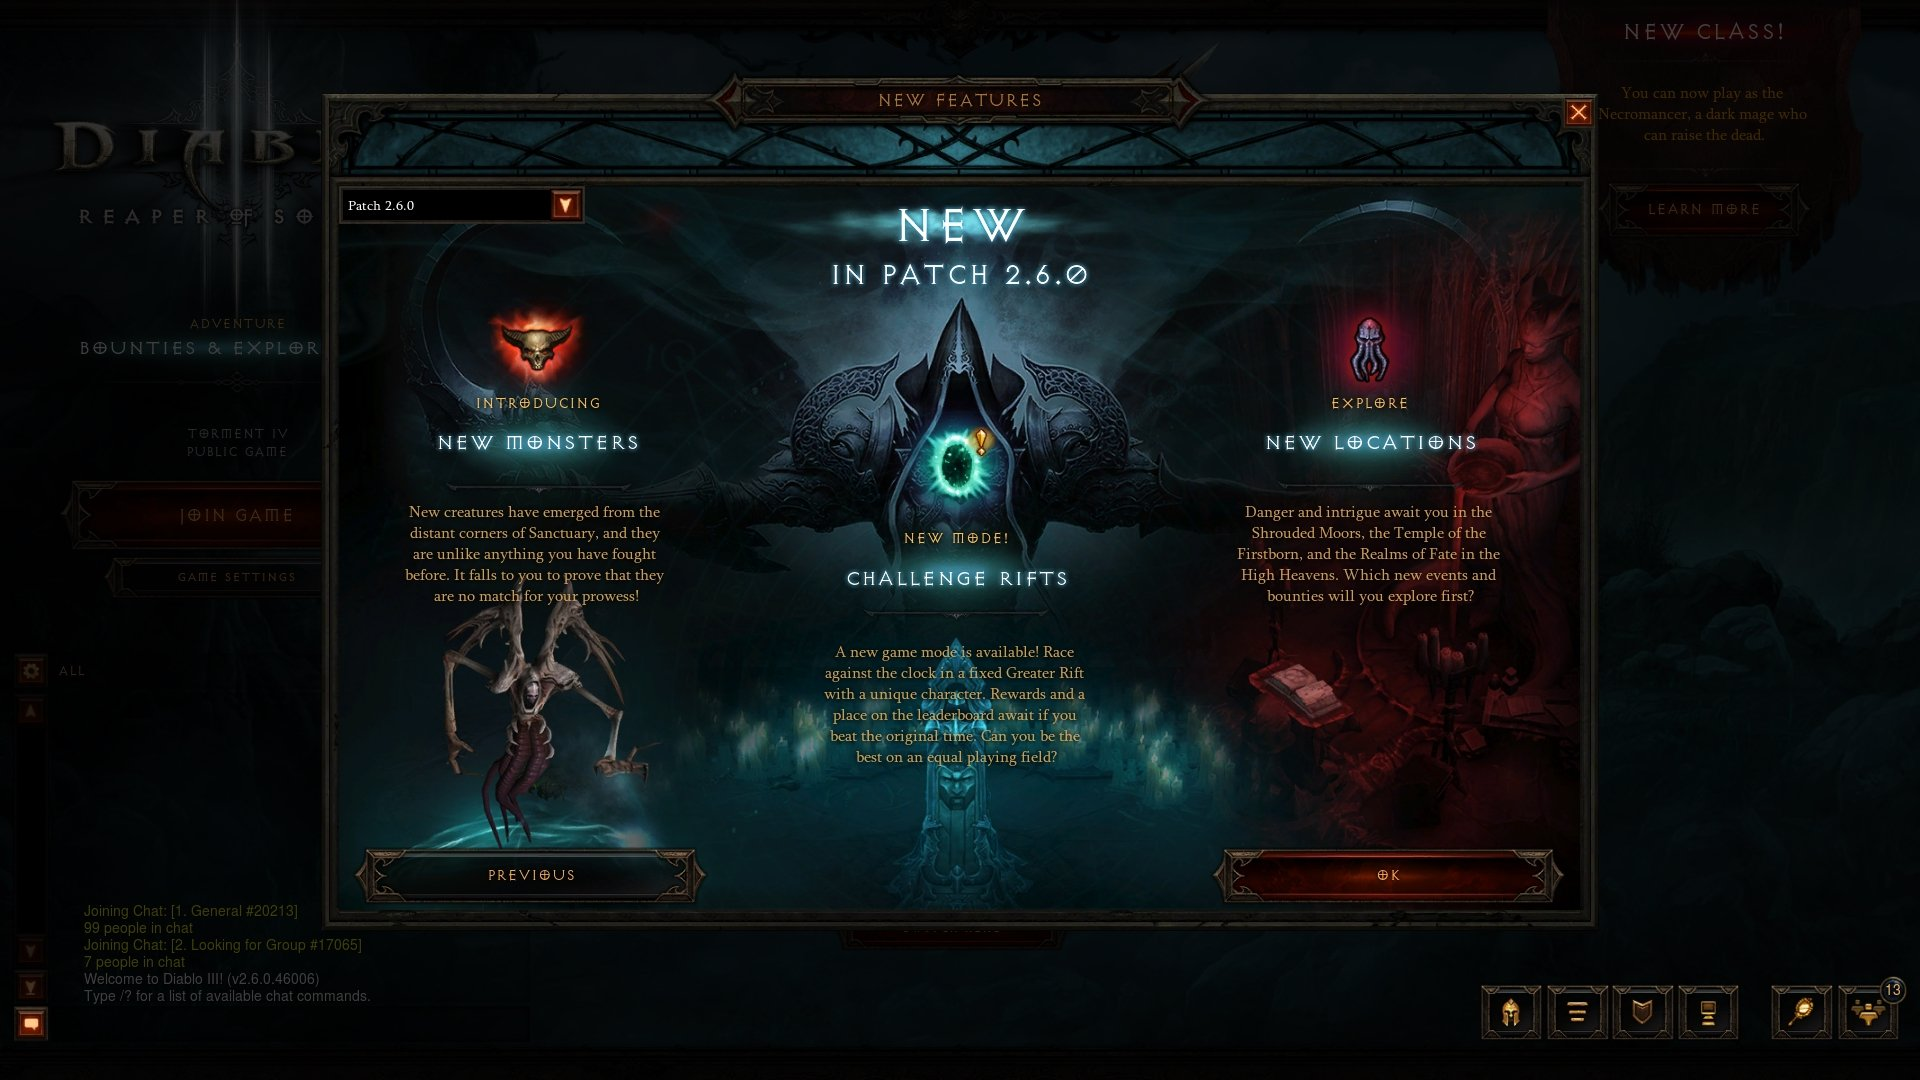 Diablo III Patch 2.6.0